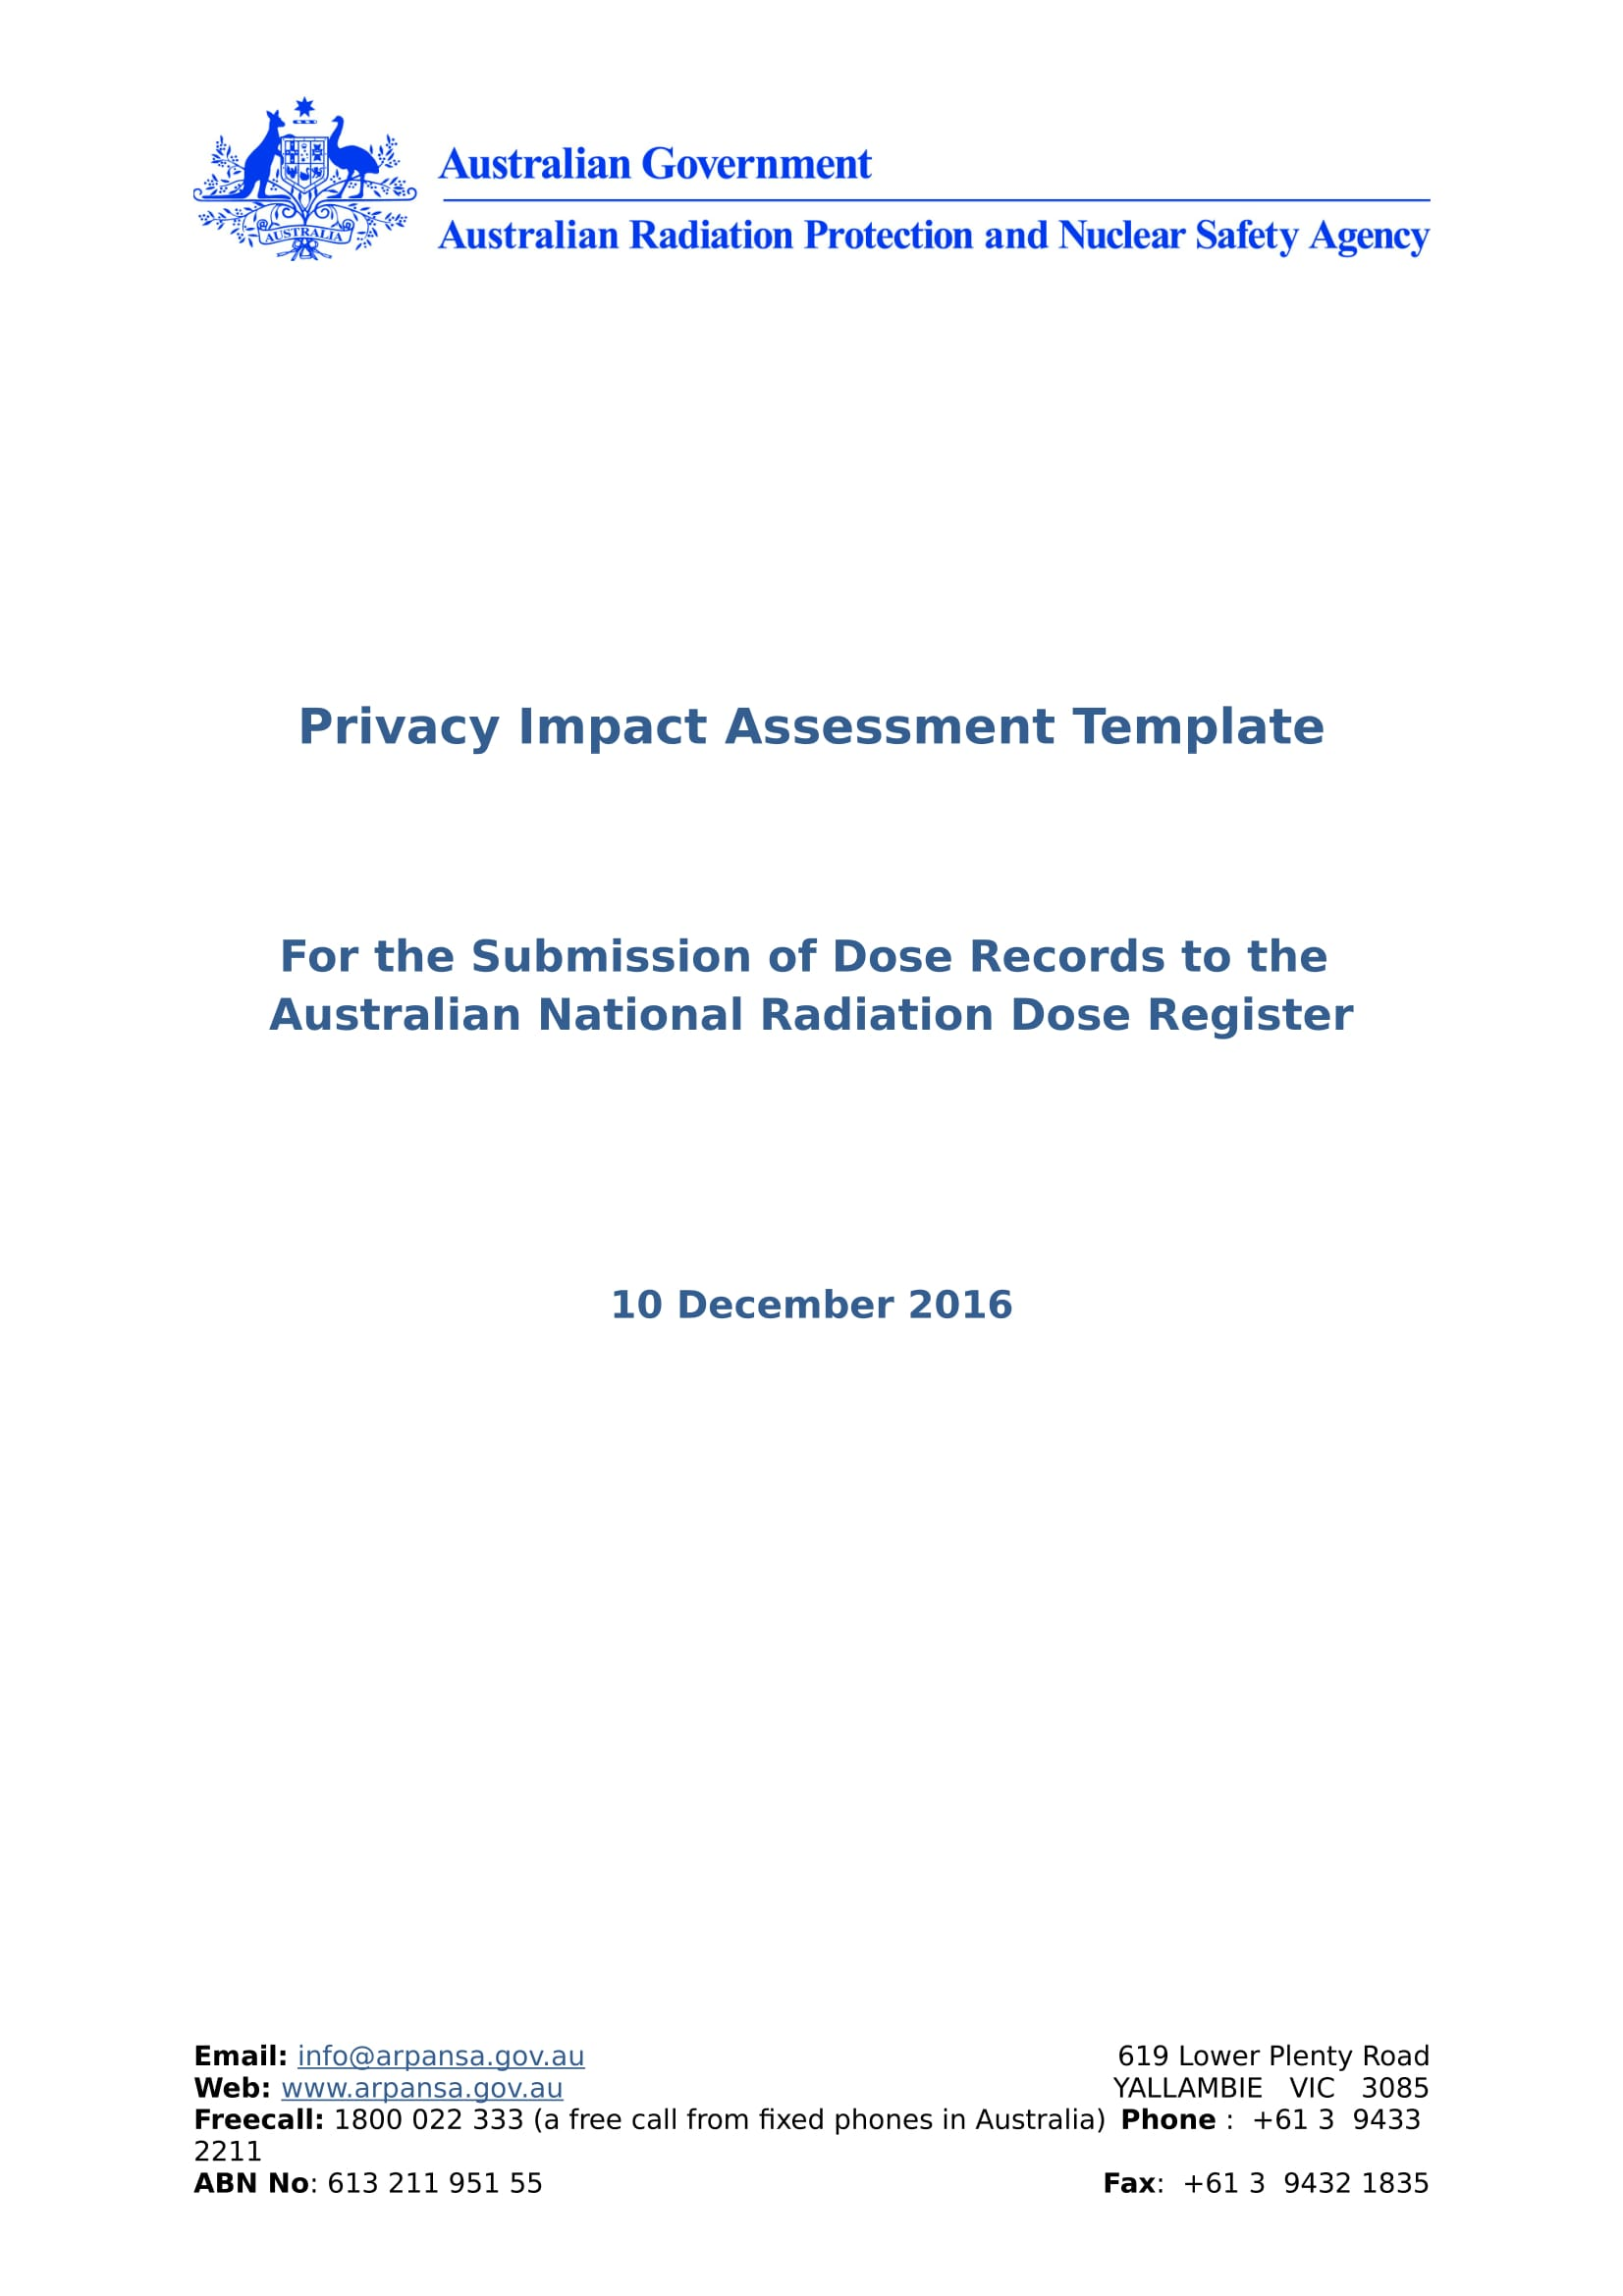 privacy impact assessment template example 01